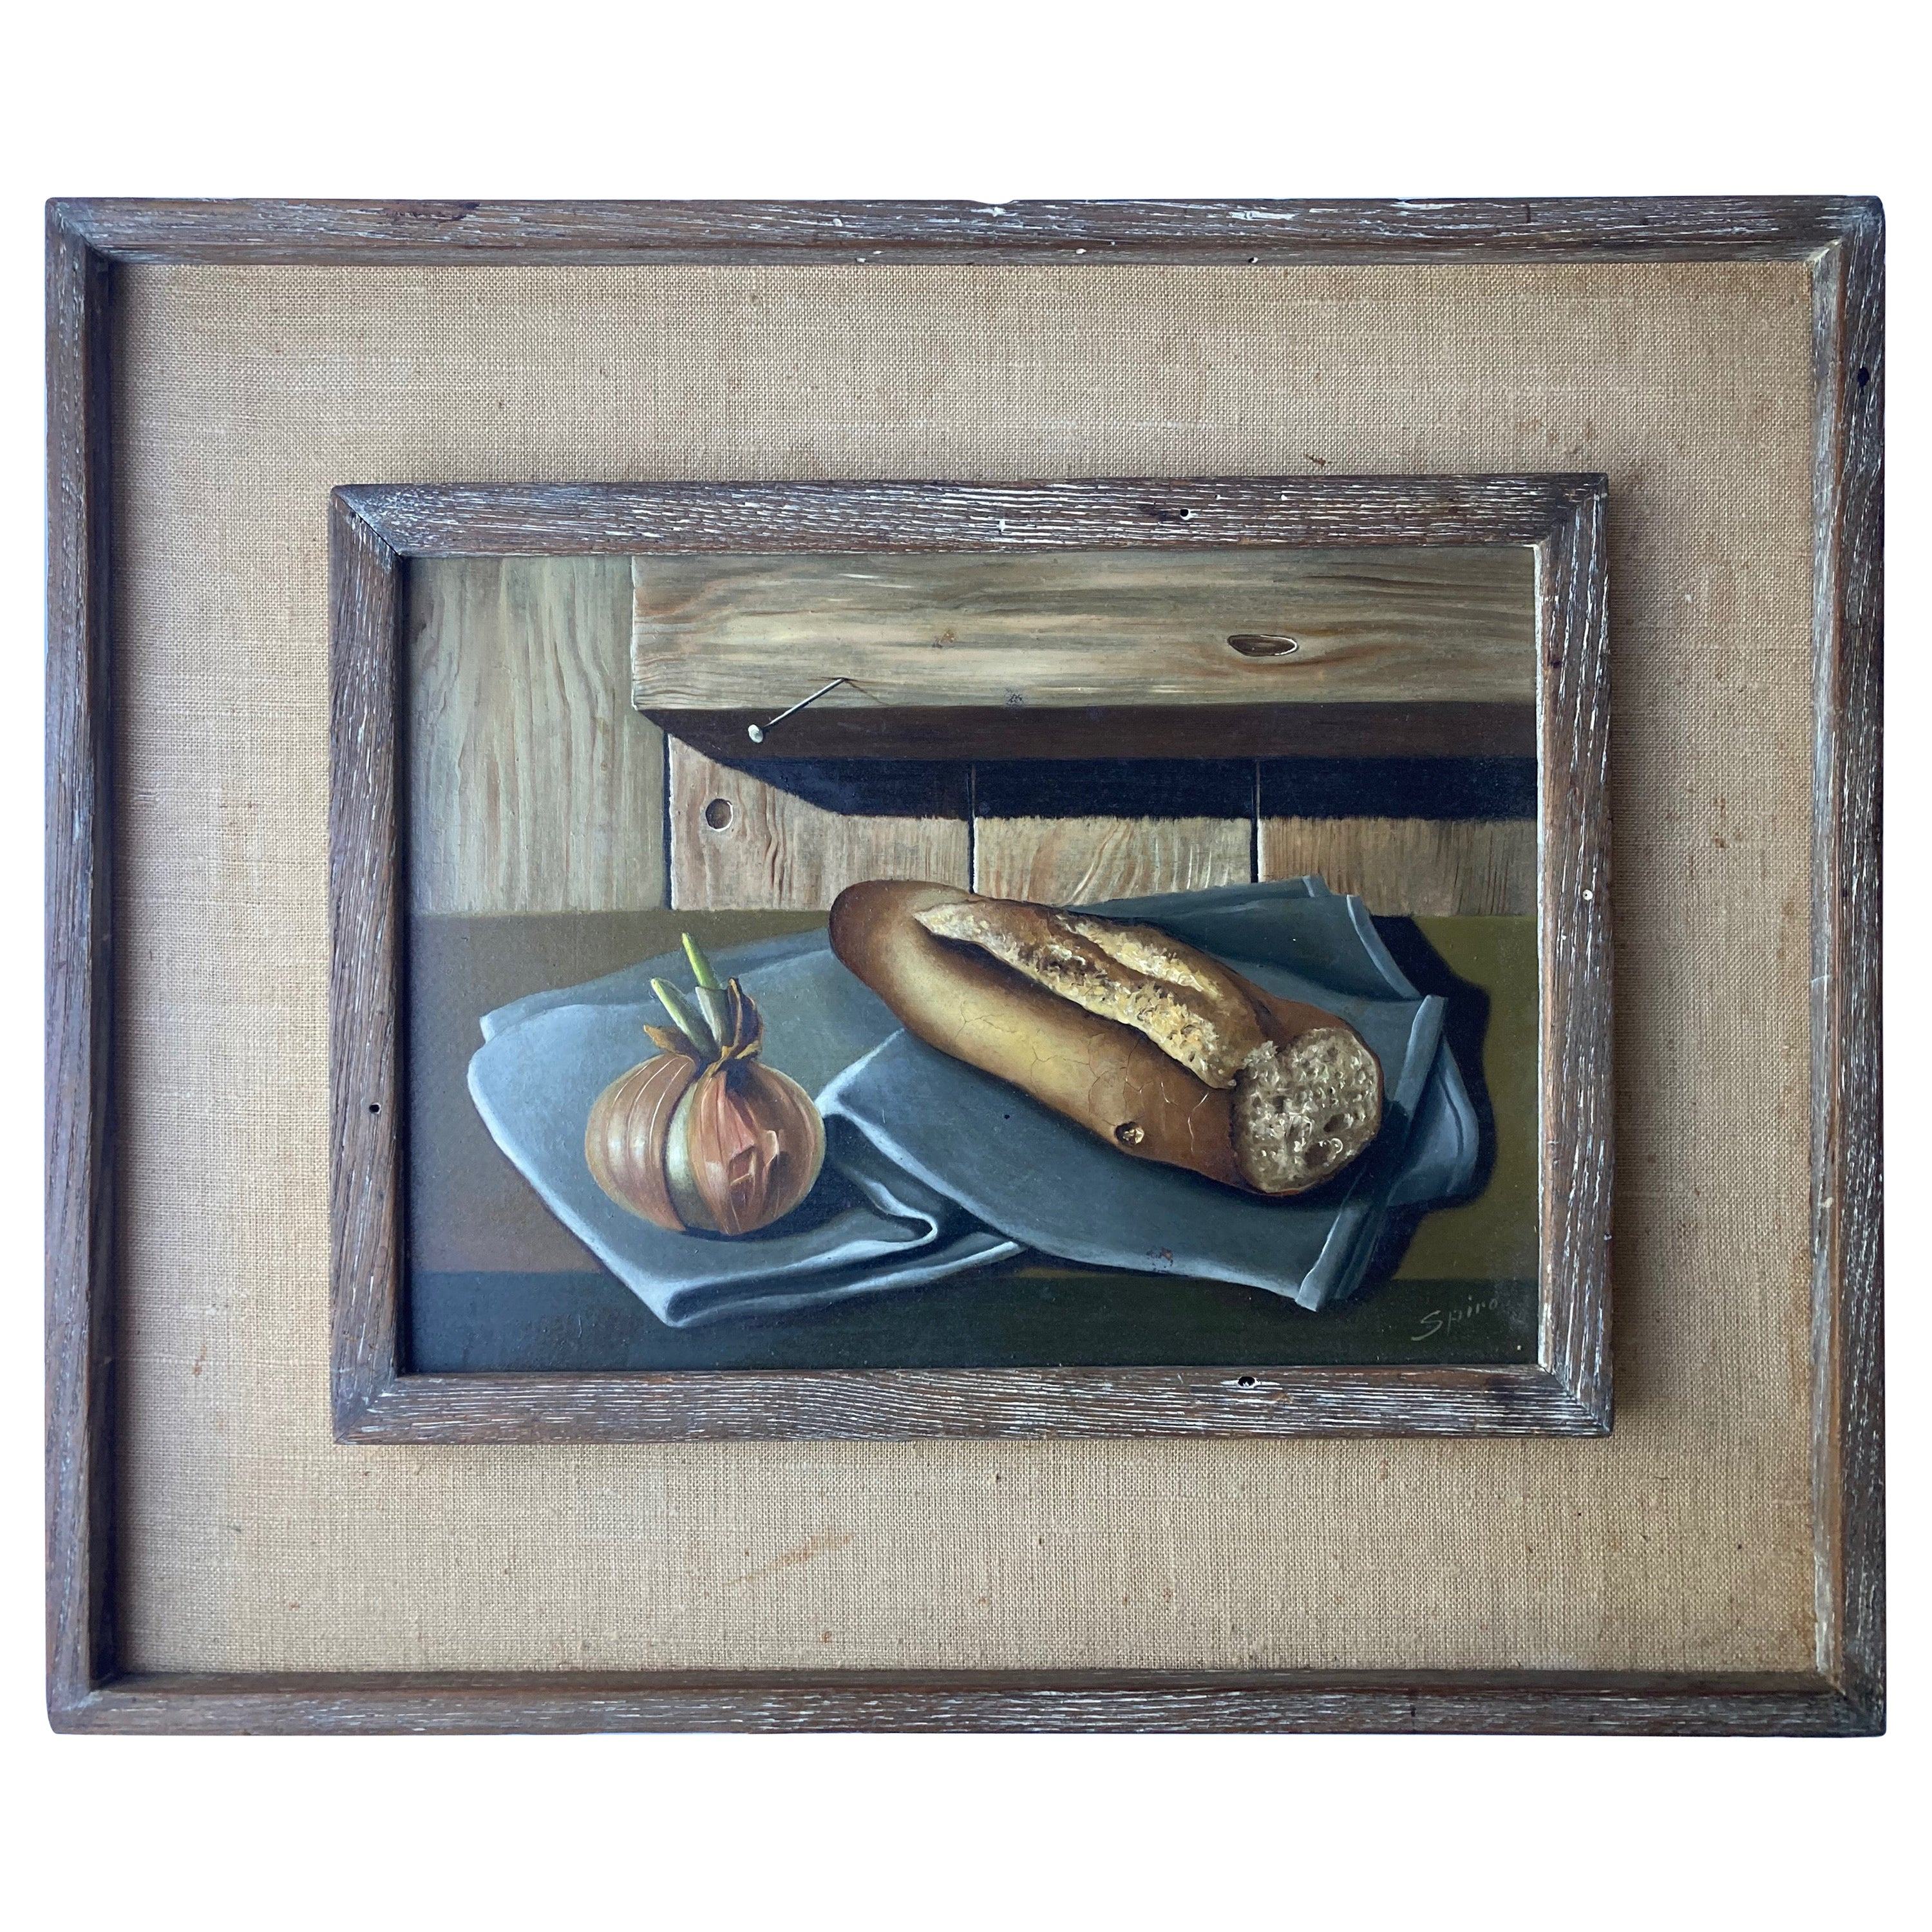 Georges Spiro, Oil on Board Painting, Still Life/ Surrealist